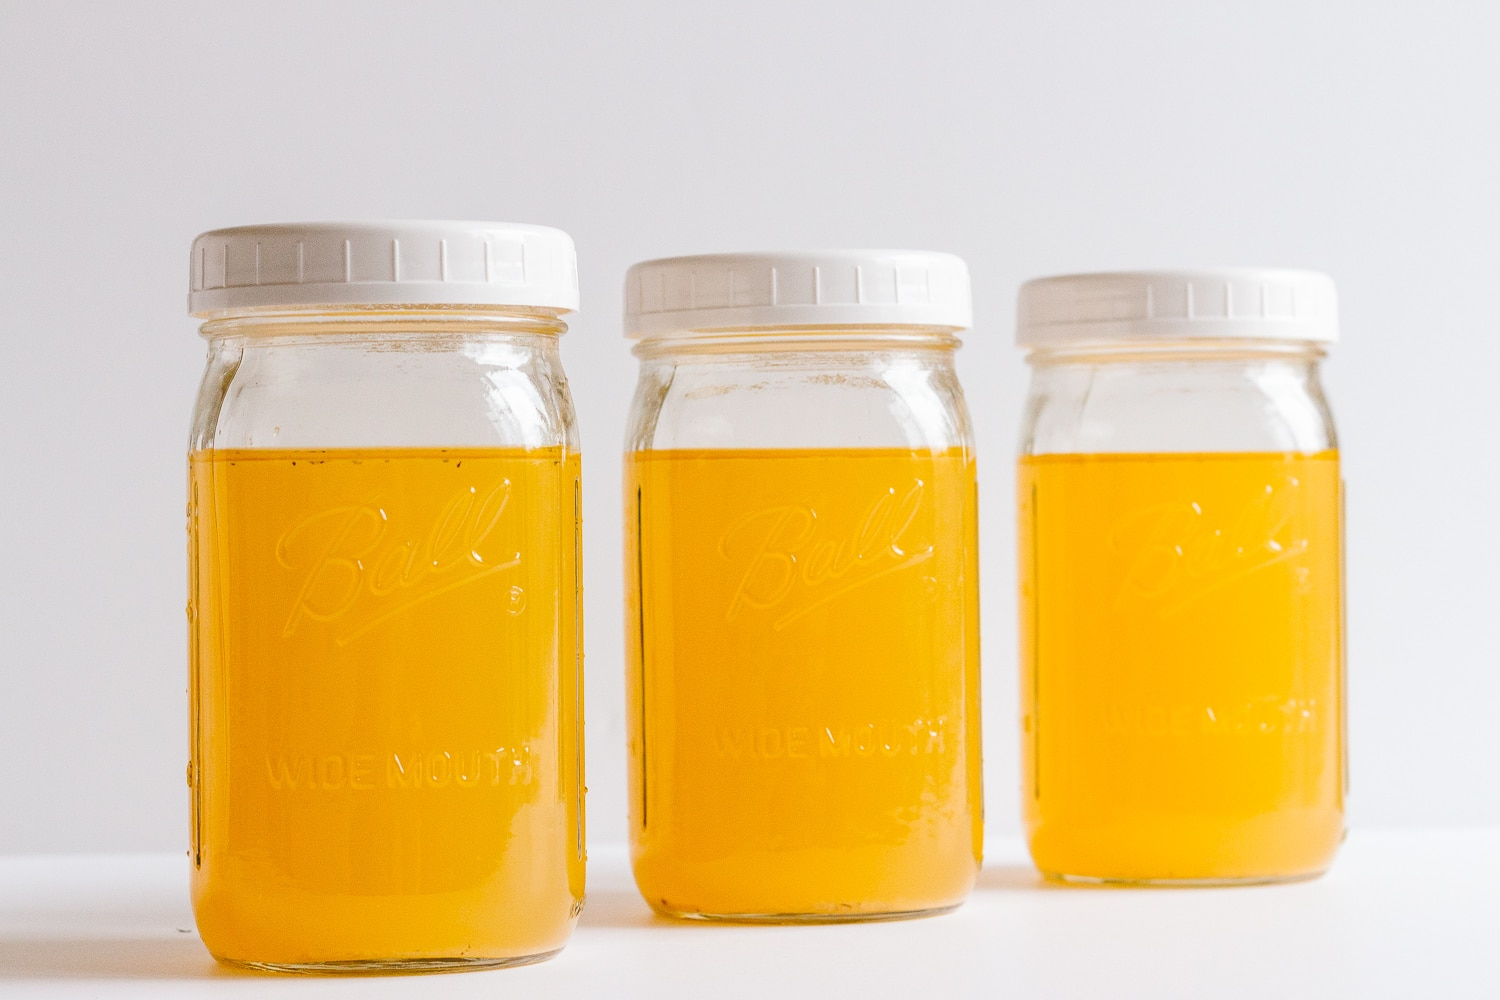 Three mason jars filled with golden coloured turkey stock